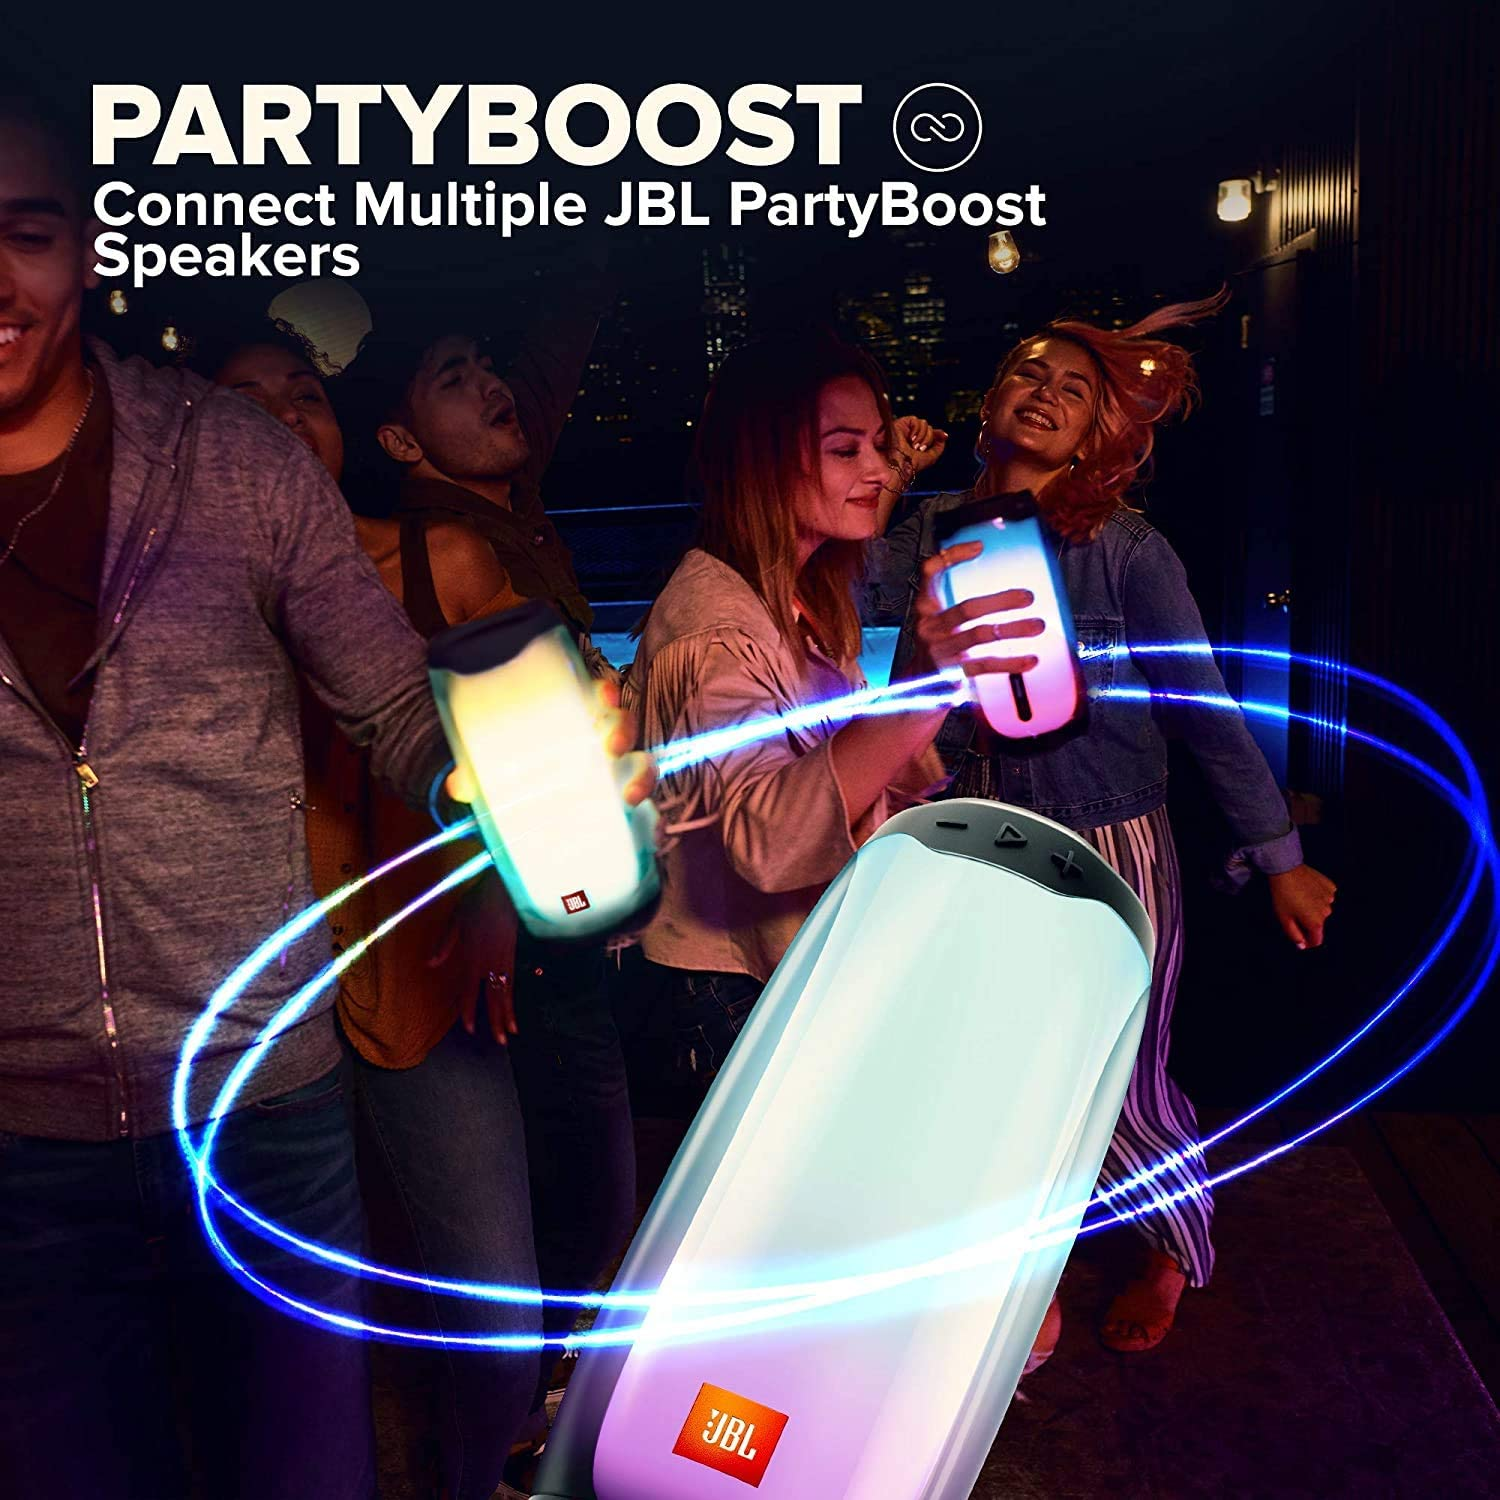 JBL Pulse 4 - PartyBoost